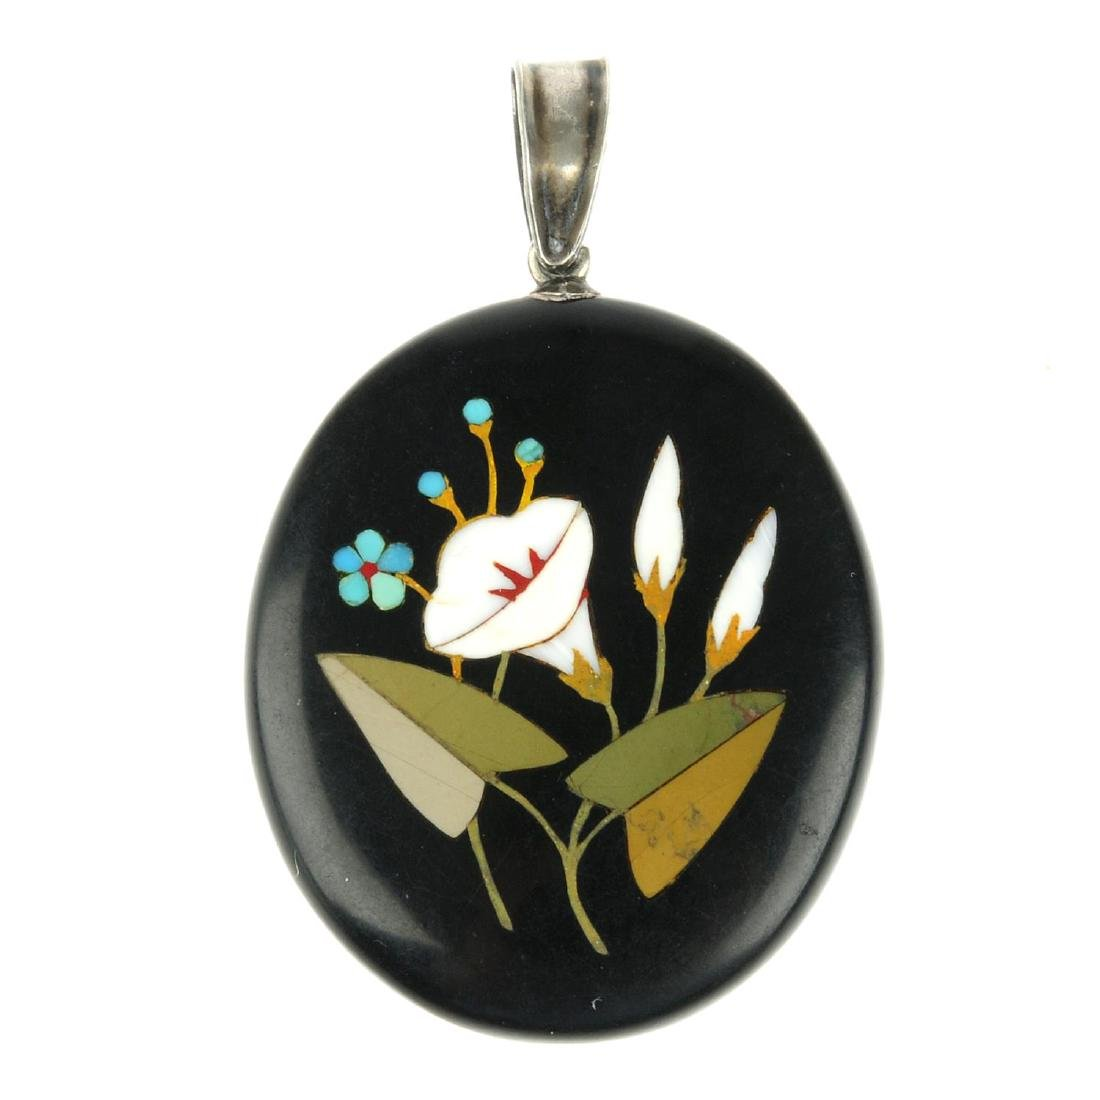 A late 19th century pietra dura pendant. Of oval